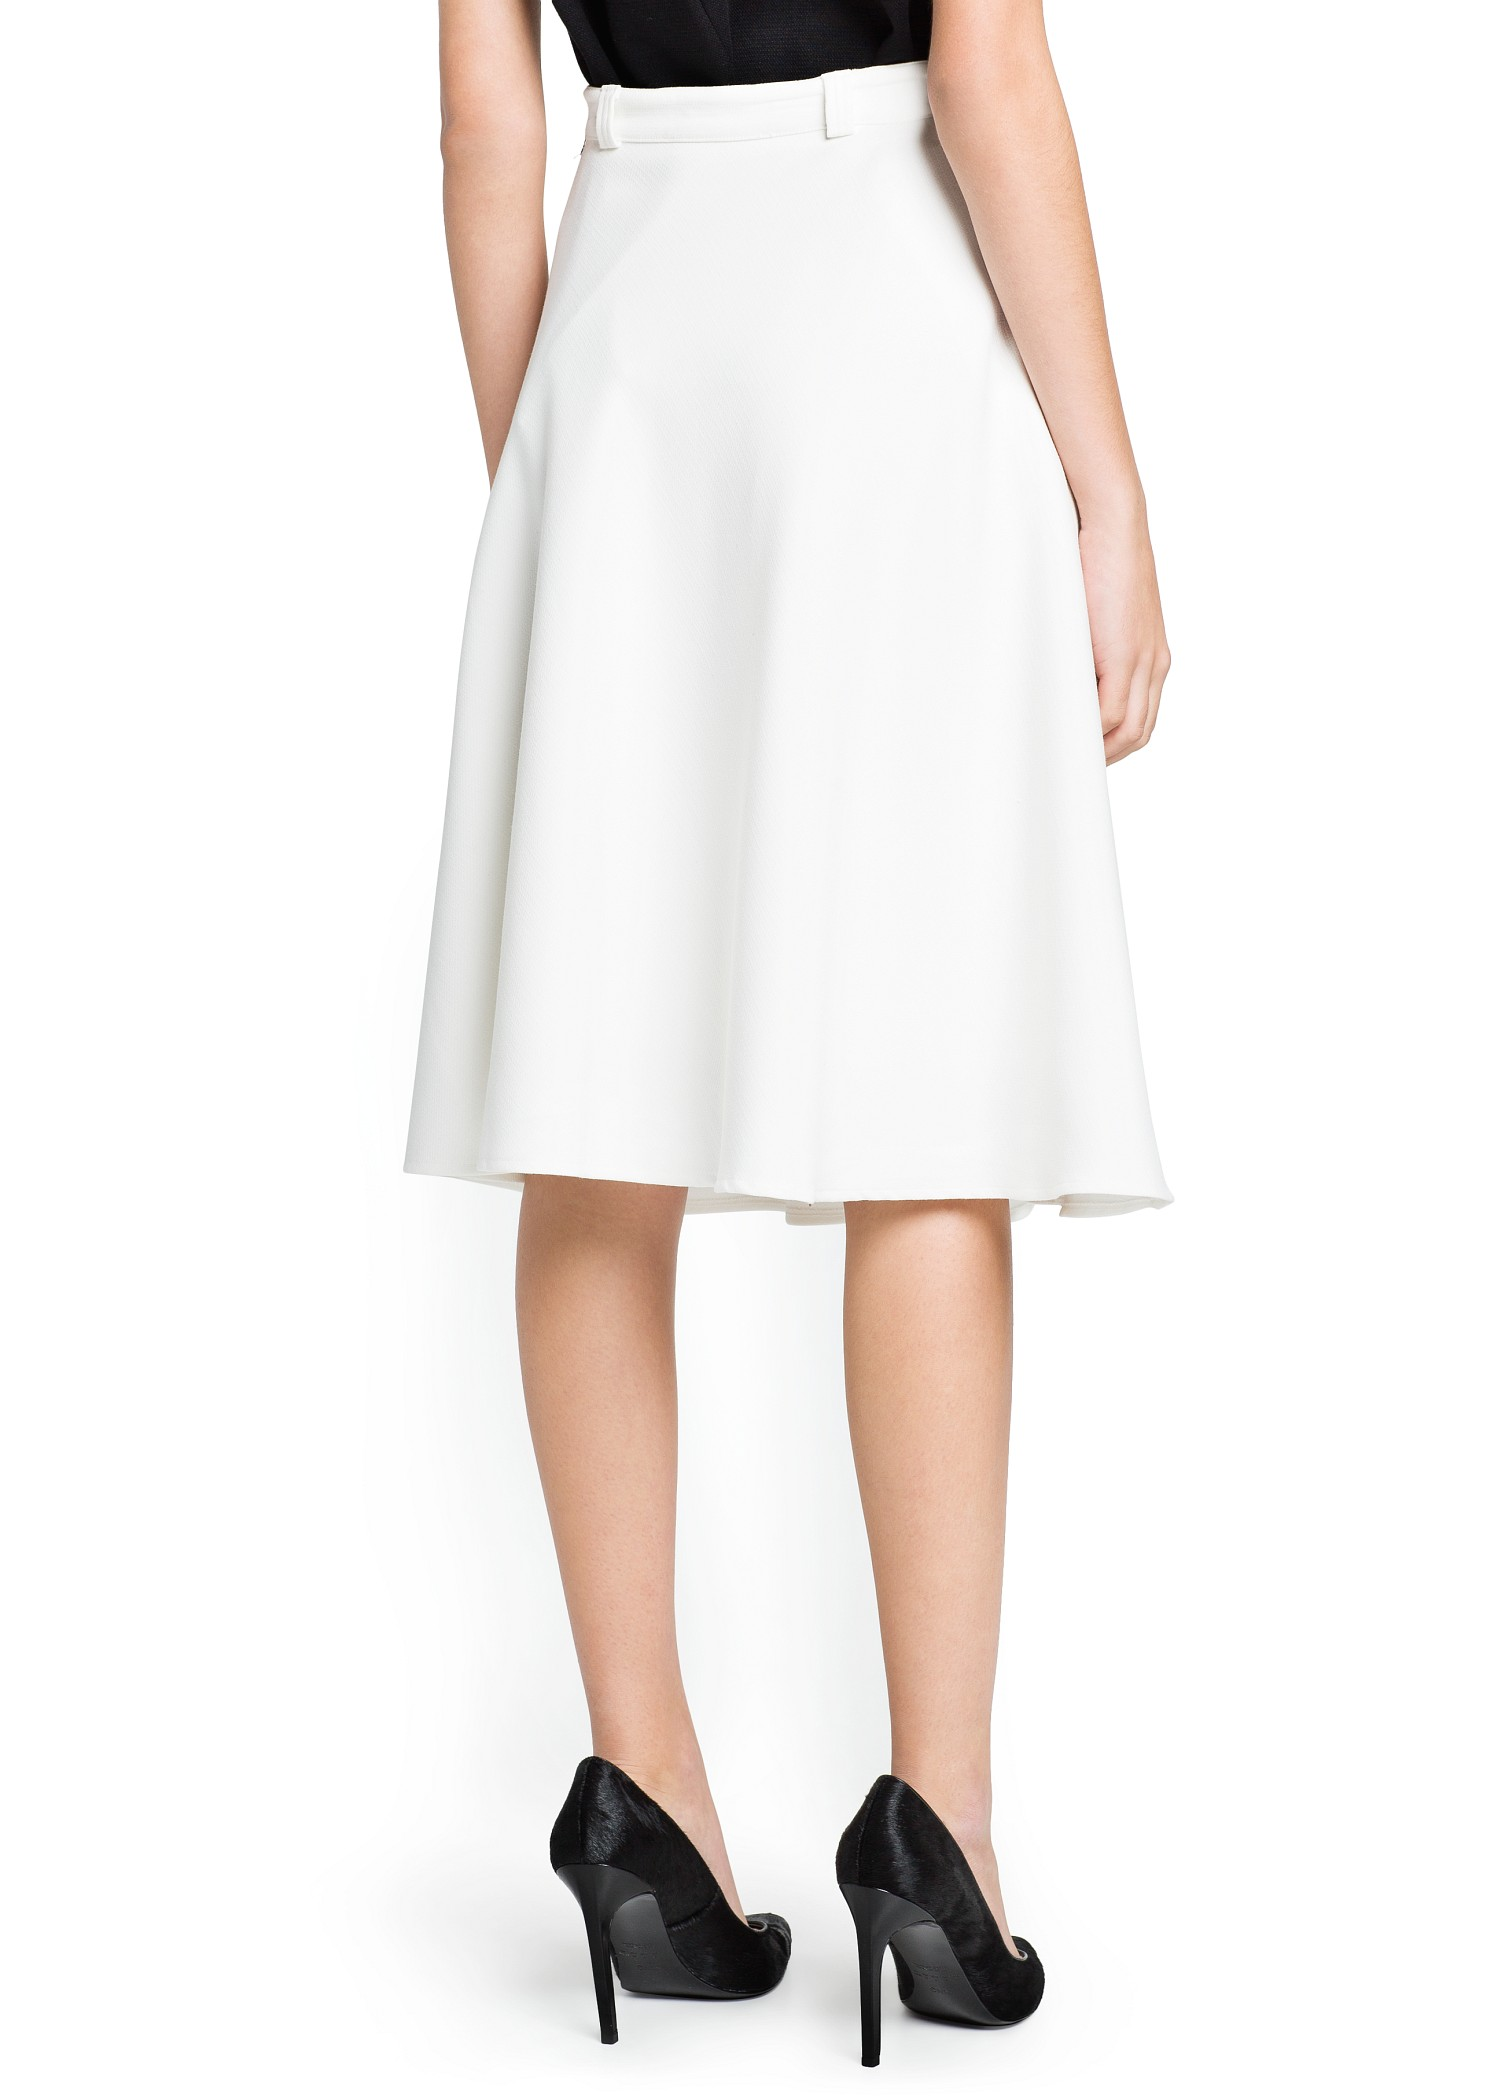 Mango Texture Flared Skirt in White | Lyst